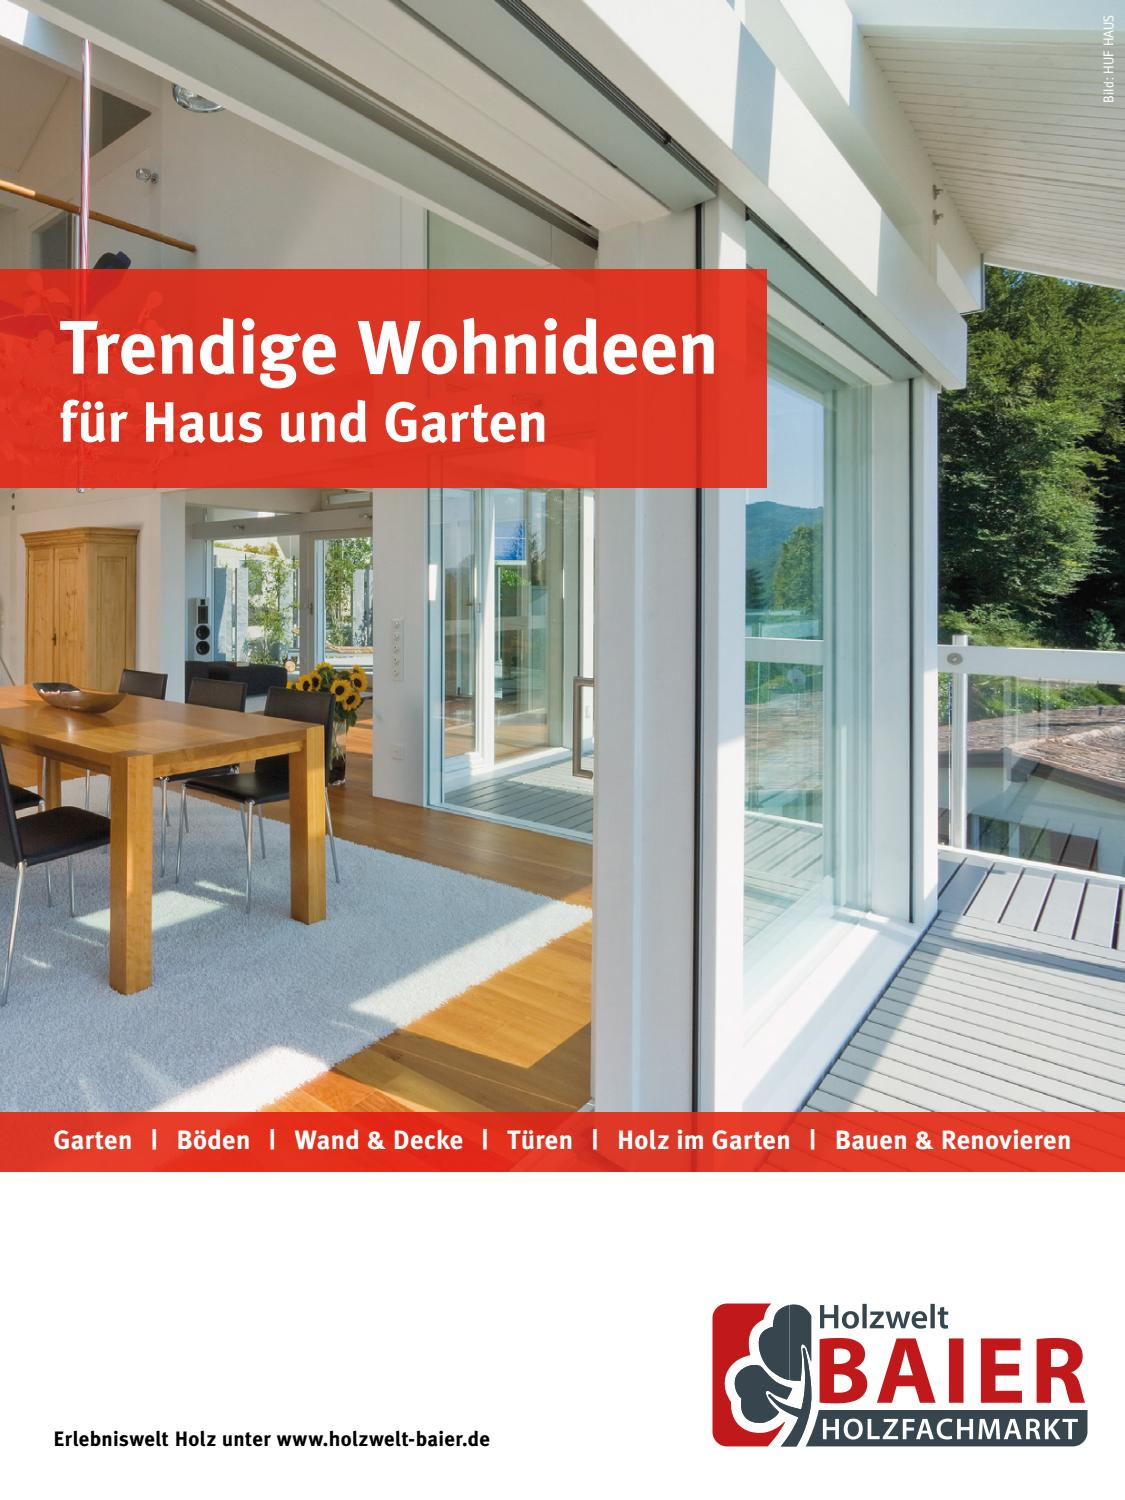 Holzwelt Baier 2017 By Kaiser Design - Issuu